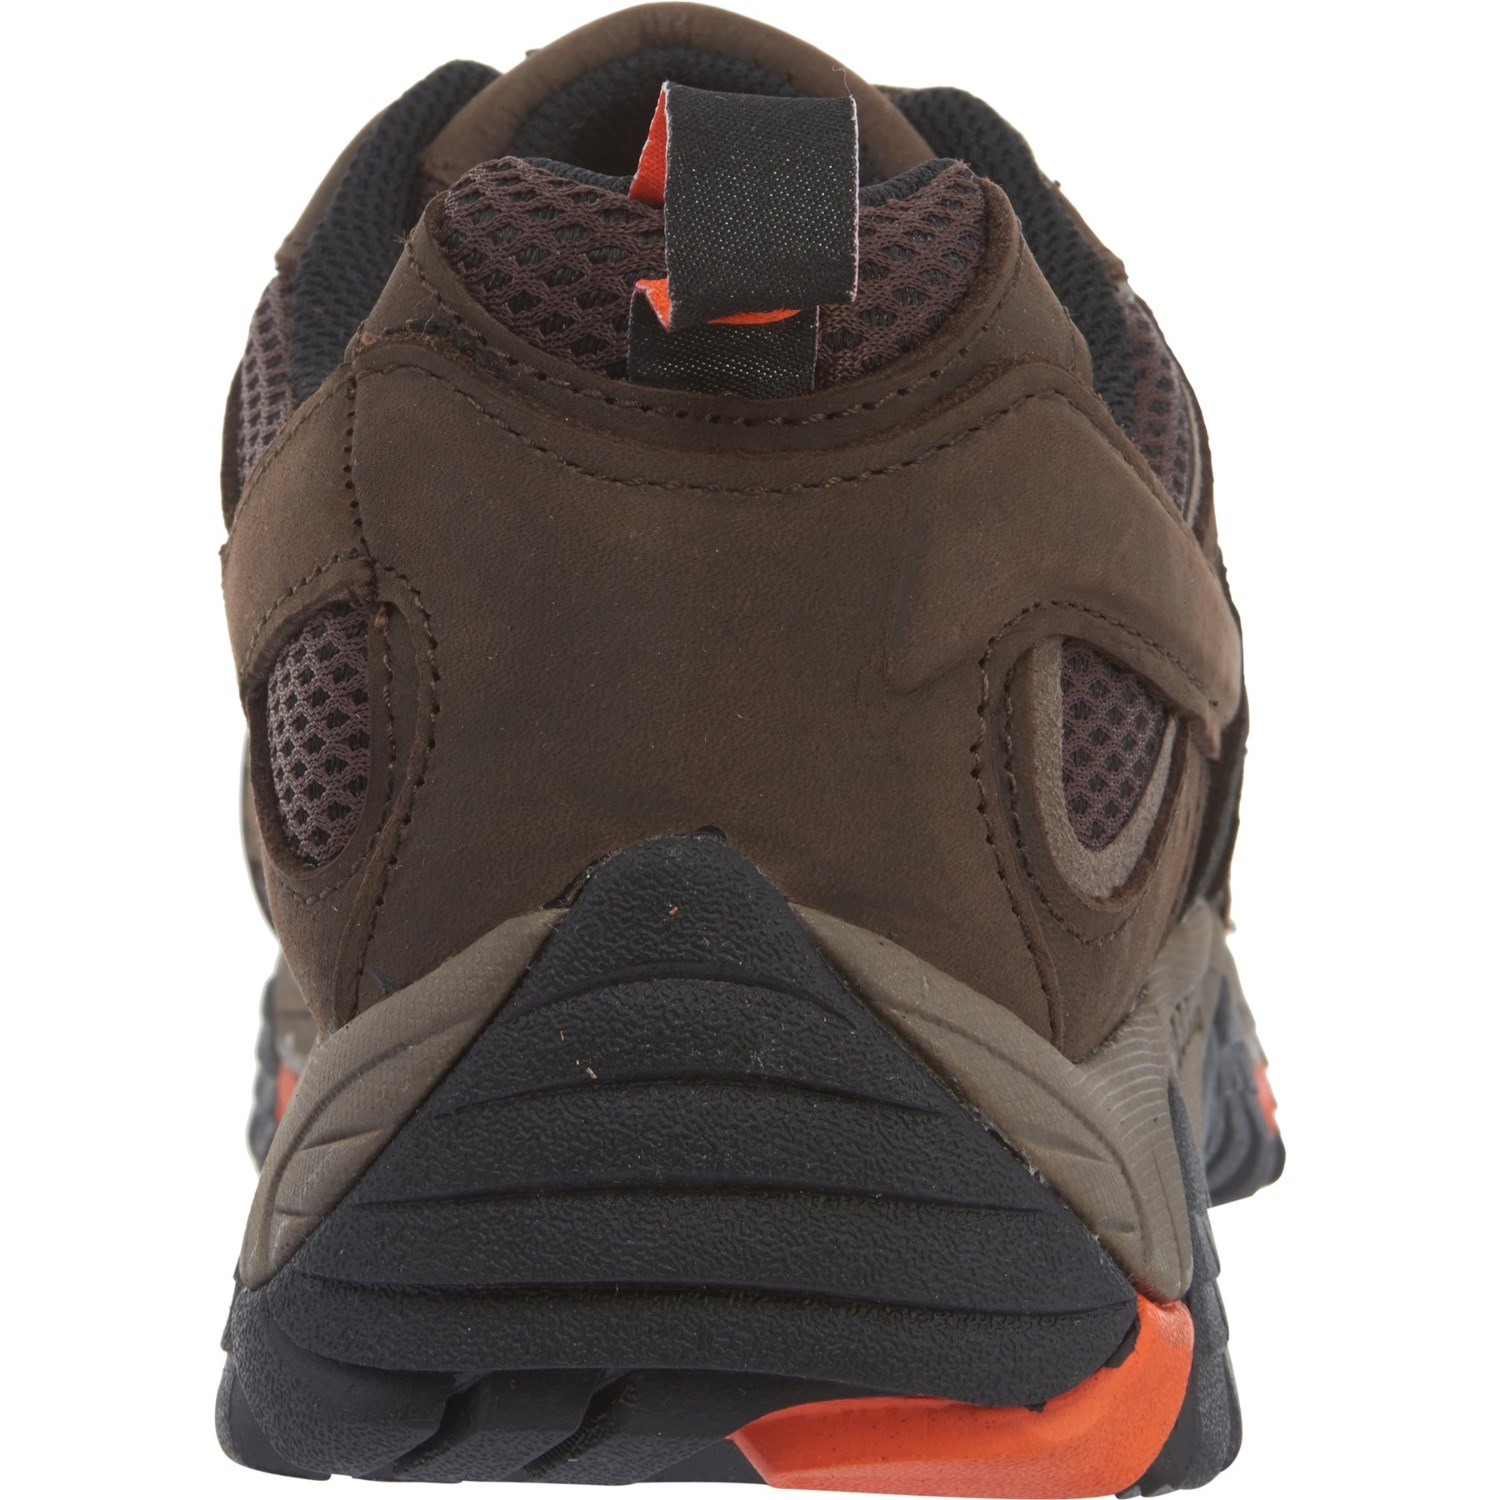 55251e3541 Merrell Moab 2 Vapor Work Shoes - Composite Safety Toe (For Men)